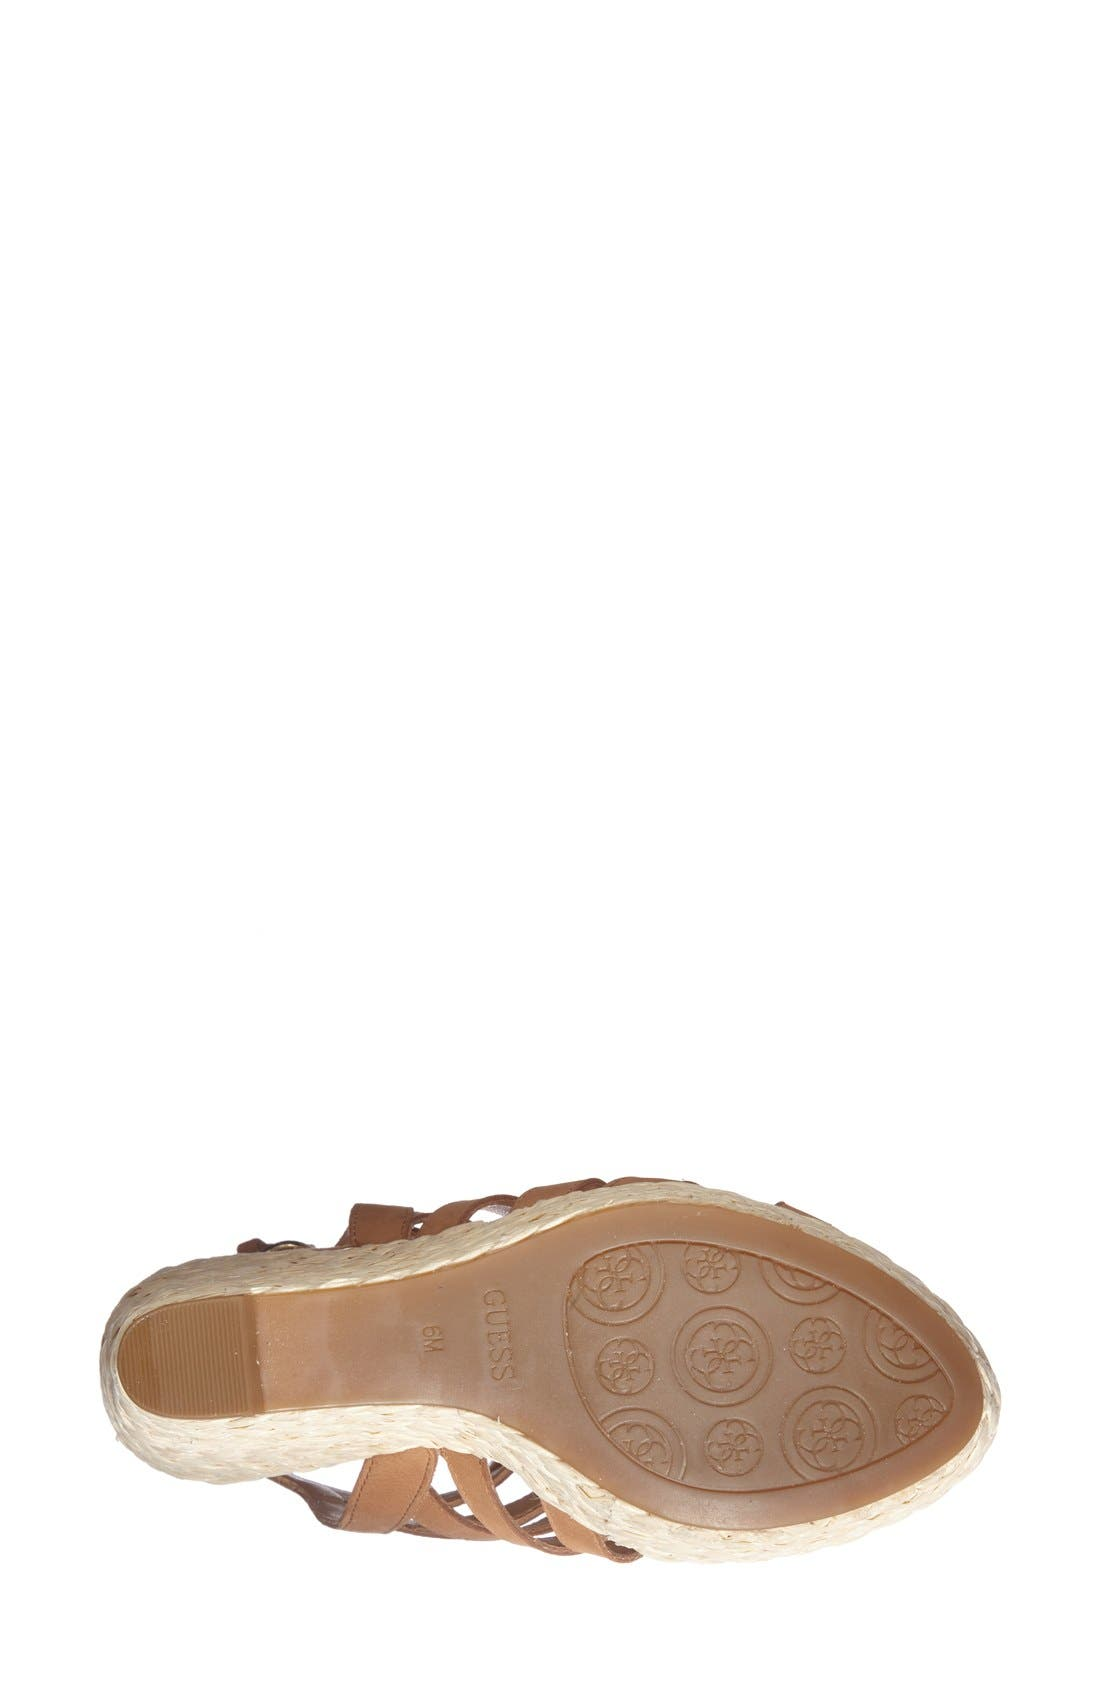 Alternate Image 4  - GUESS 'Onixx' Snake Embossed Leather Wedge Sandal (Women)